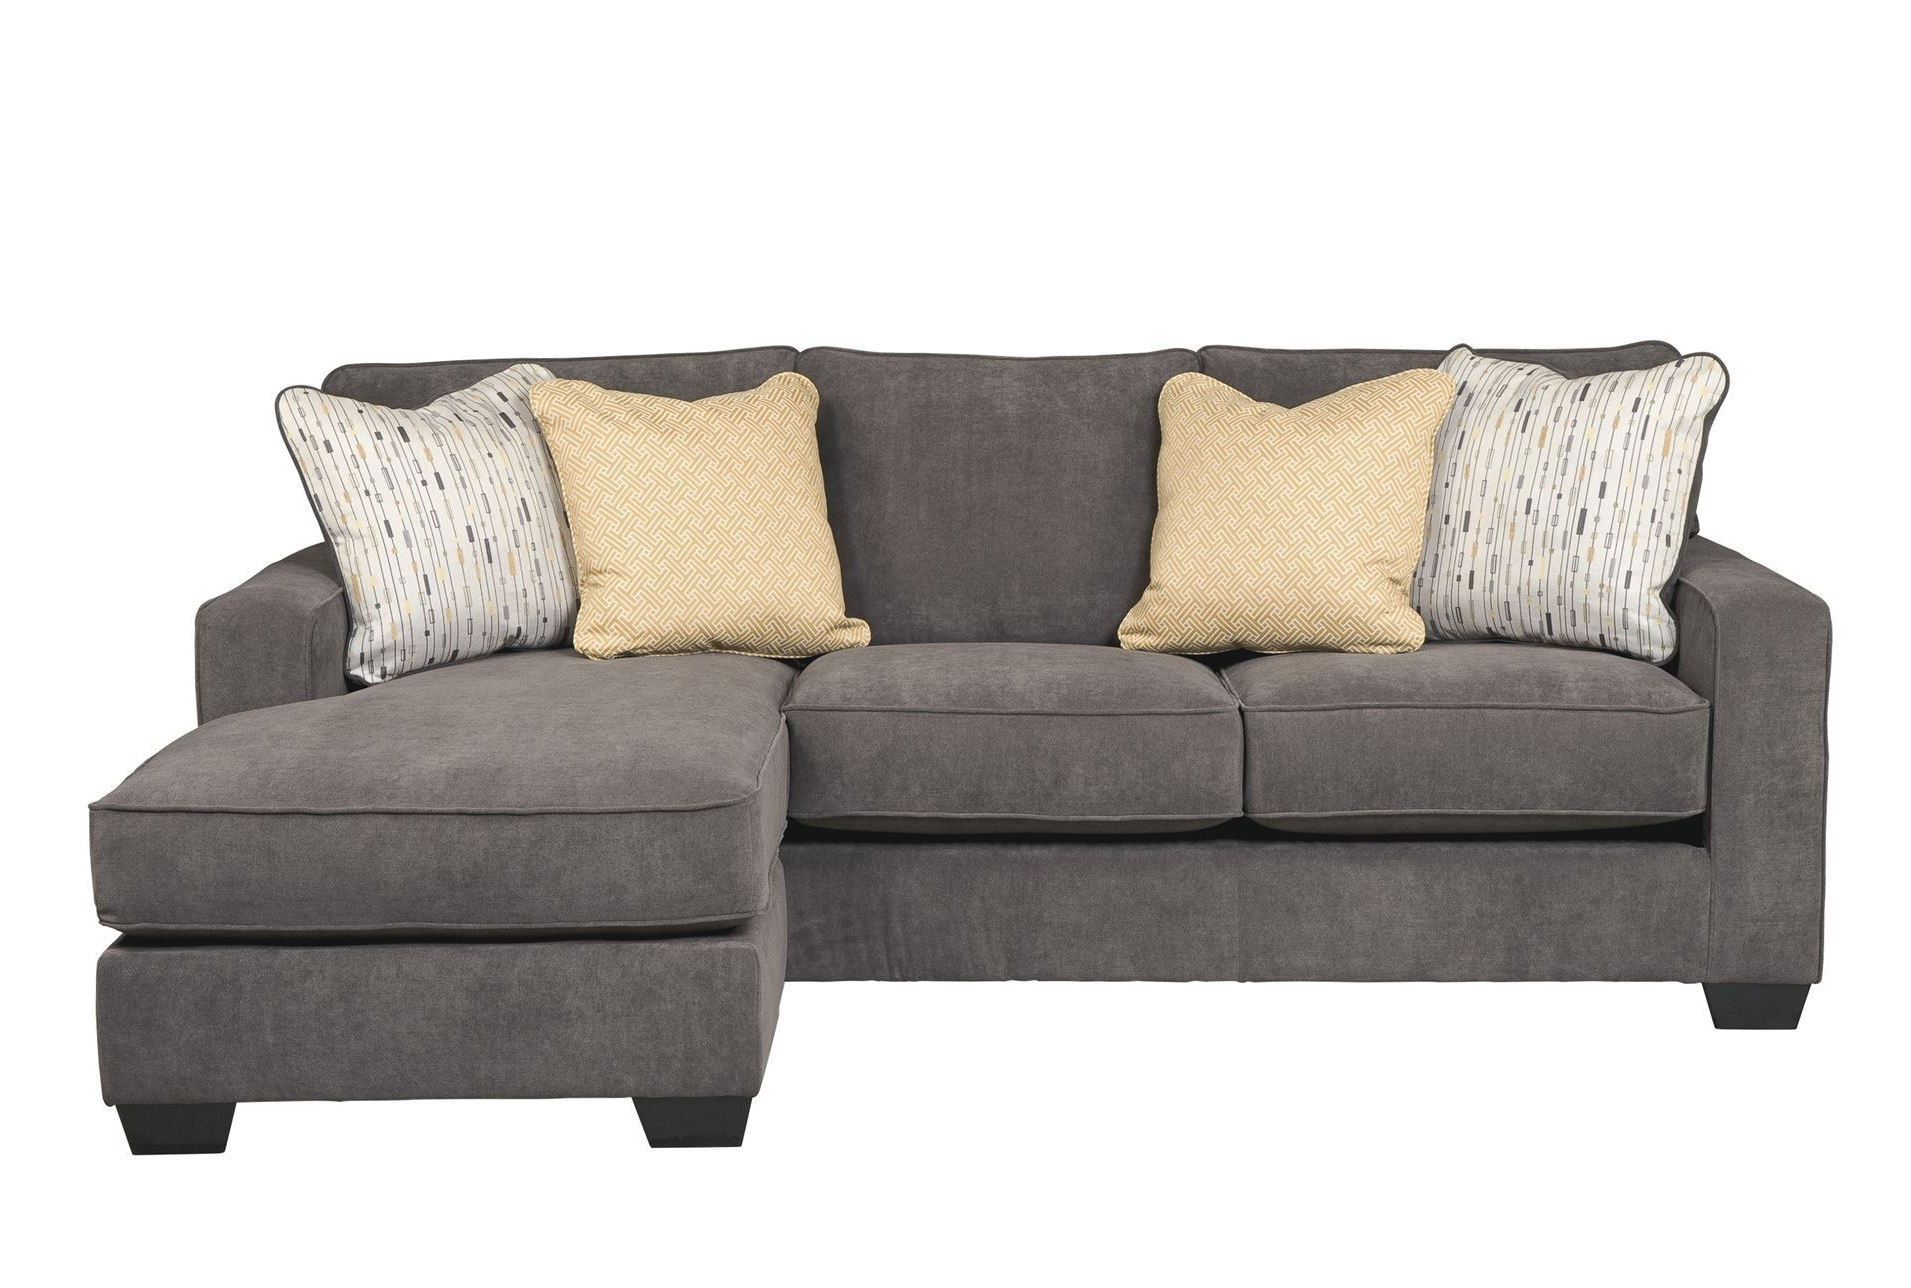 Famous Grey Couches With Chaise Inside L Grey Fabric Sectional Couch With Chaise And Three Seats (View 3 of 15)